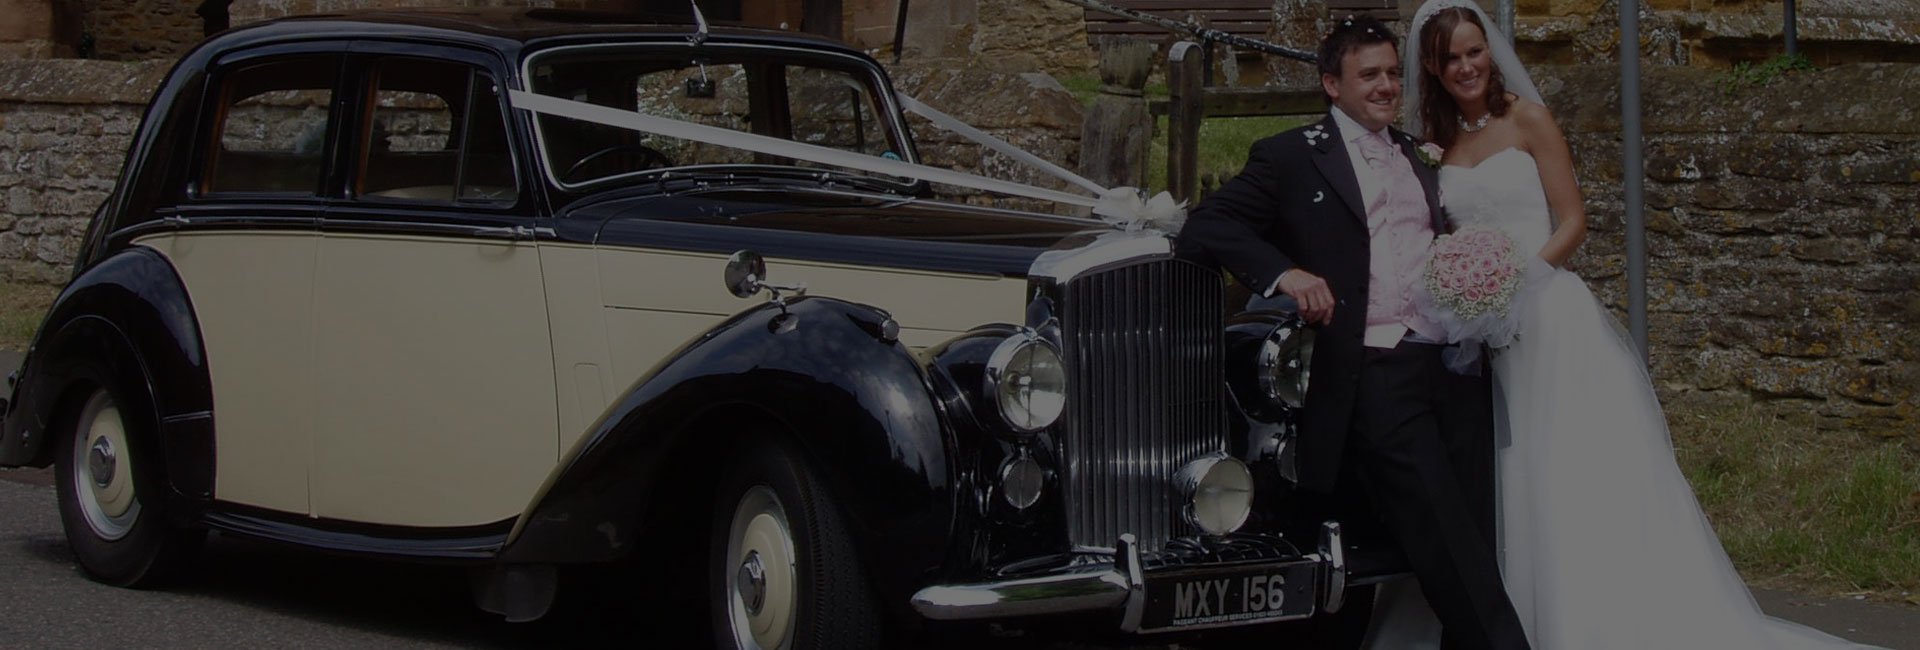 Are you looking for wedding car hire in Northamptonshire?